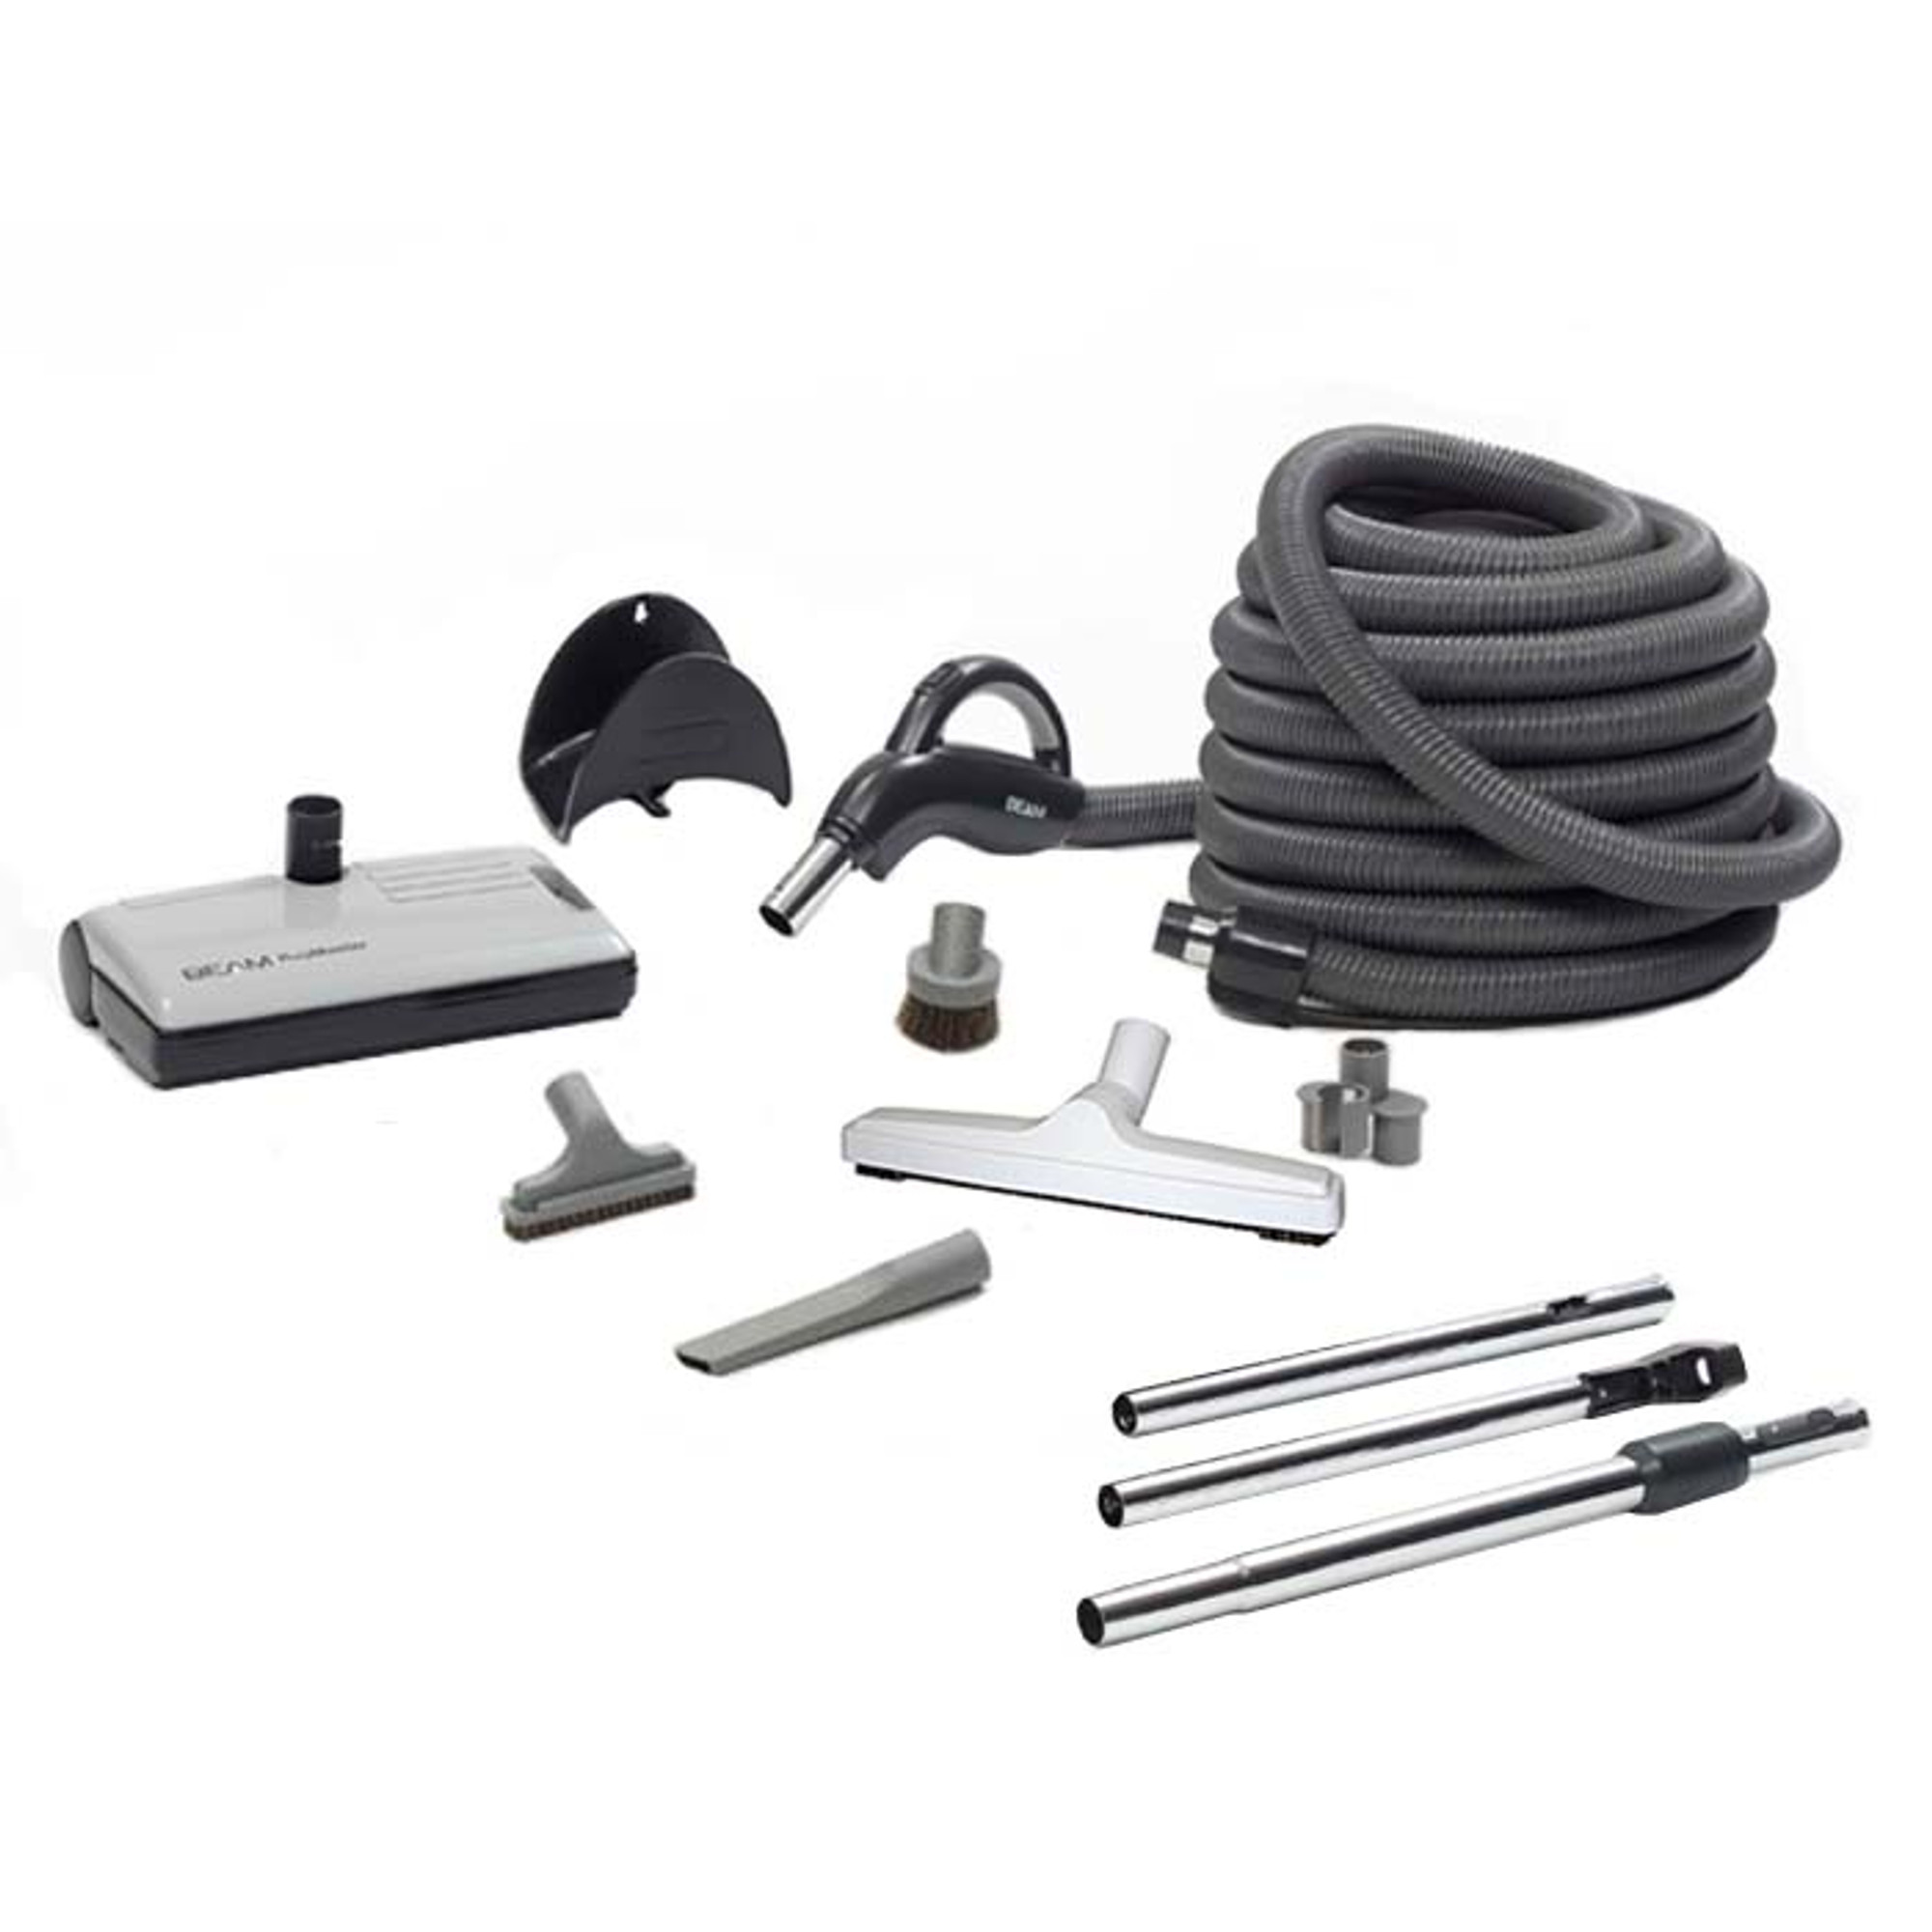 Buy Beam 375a Serenity Deluxe Central Vacuum Package From